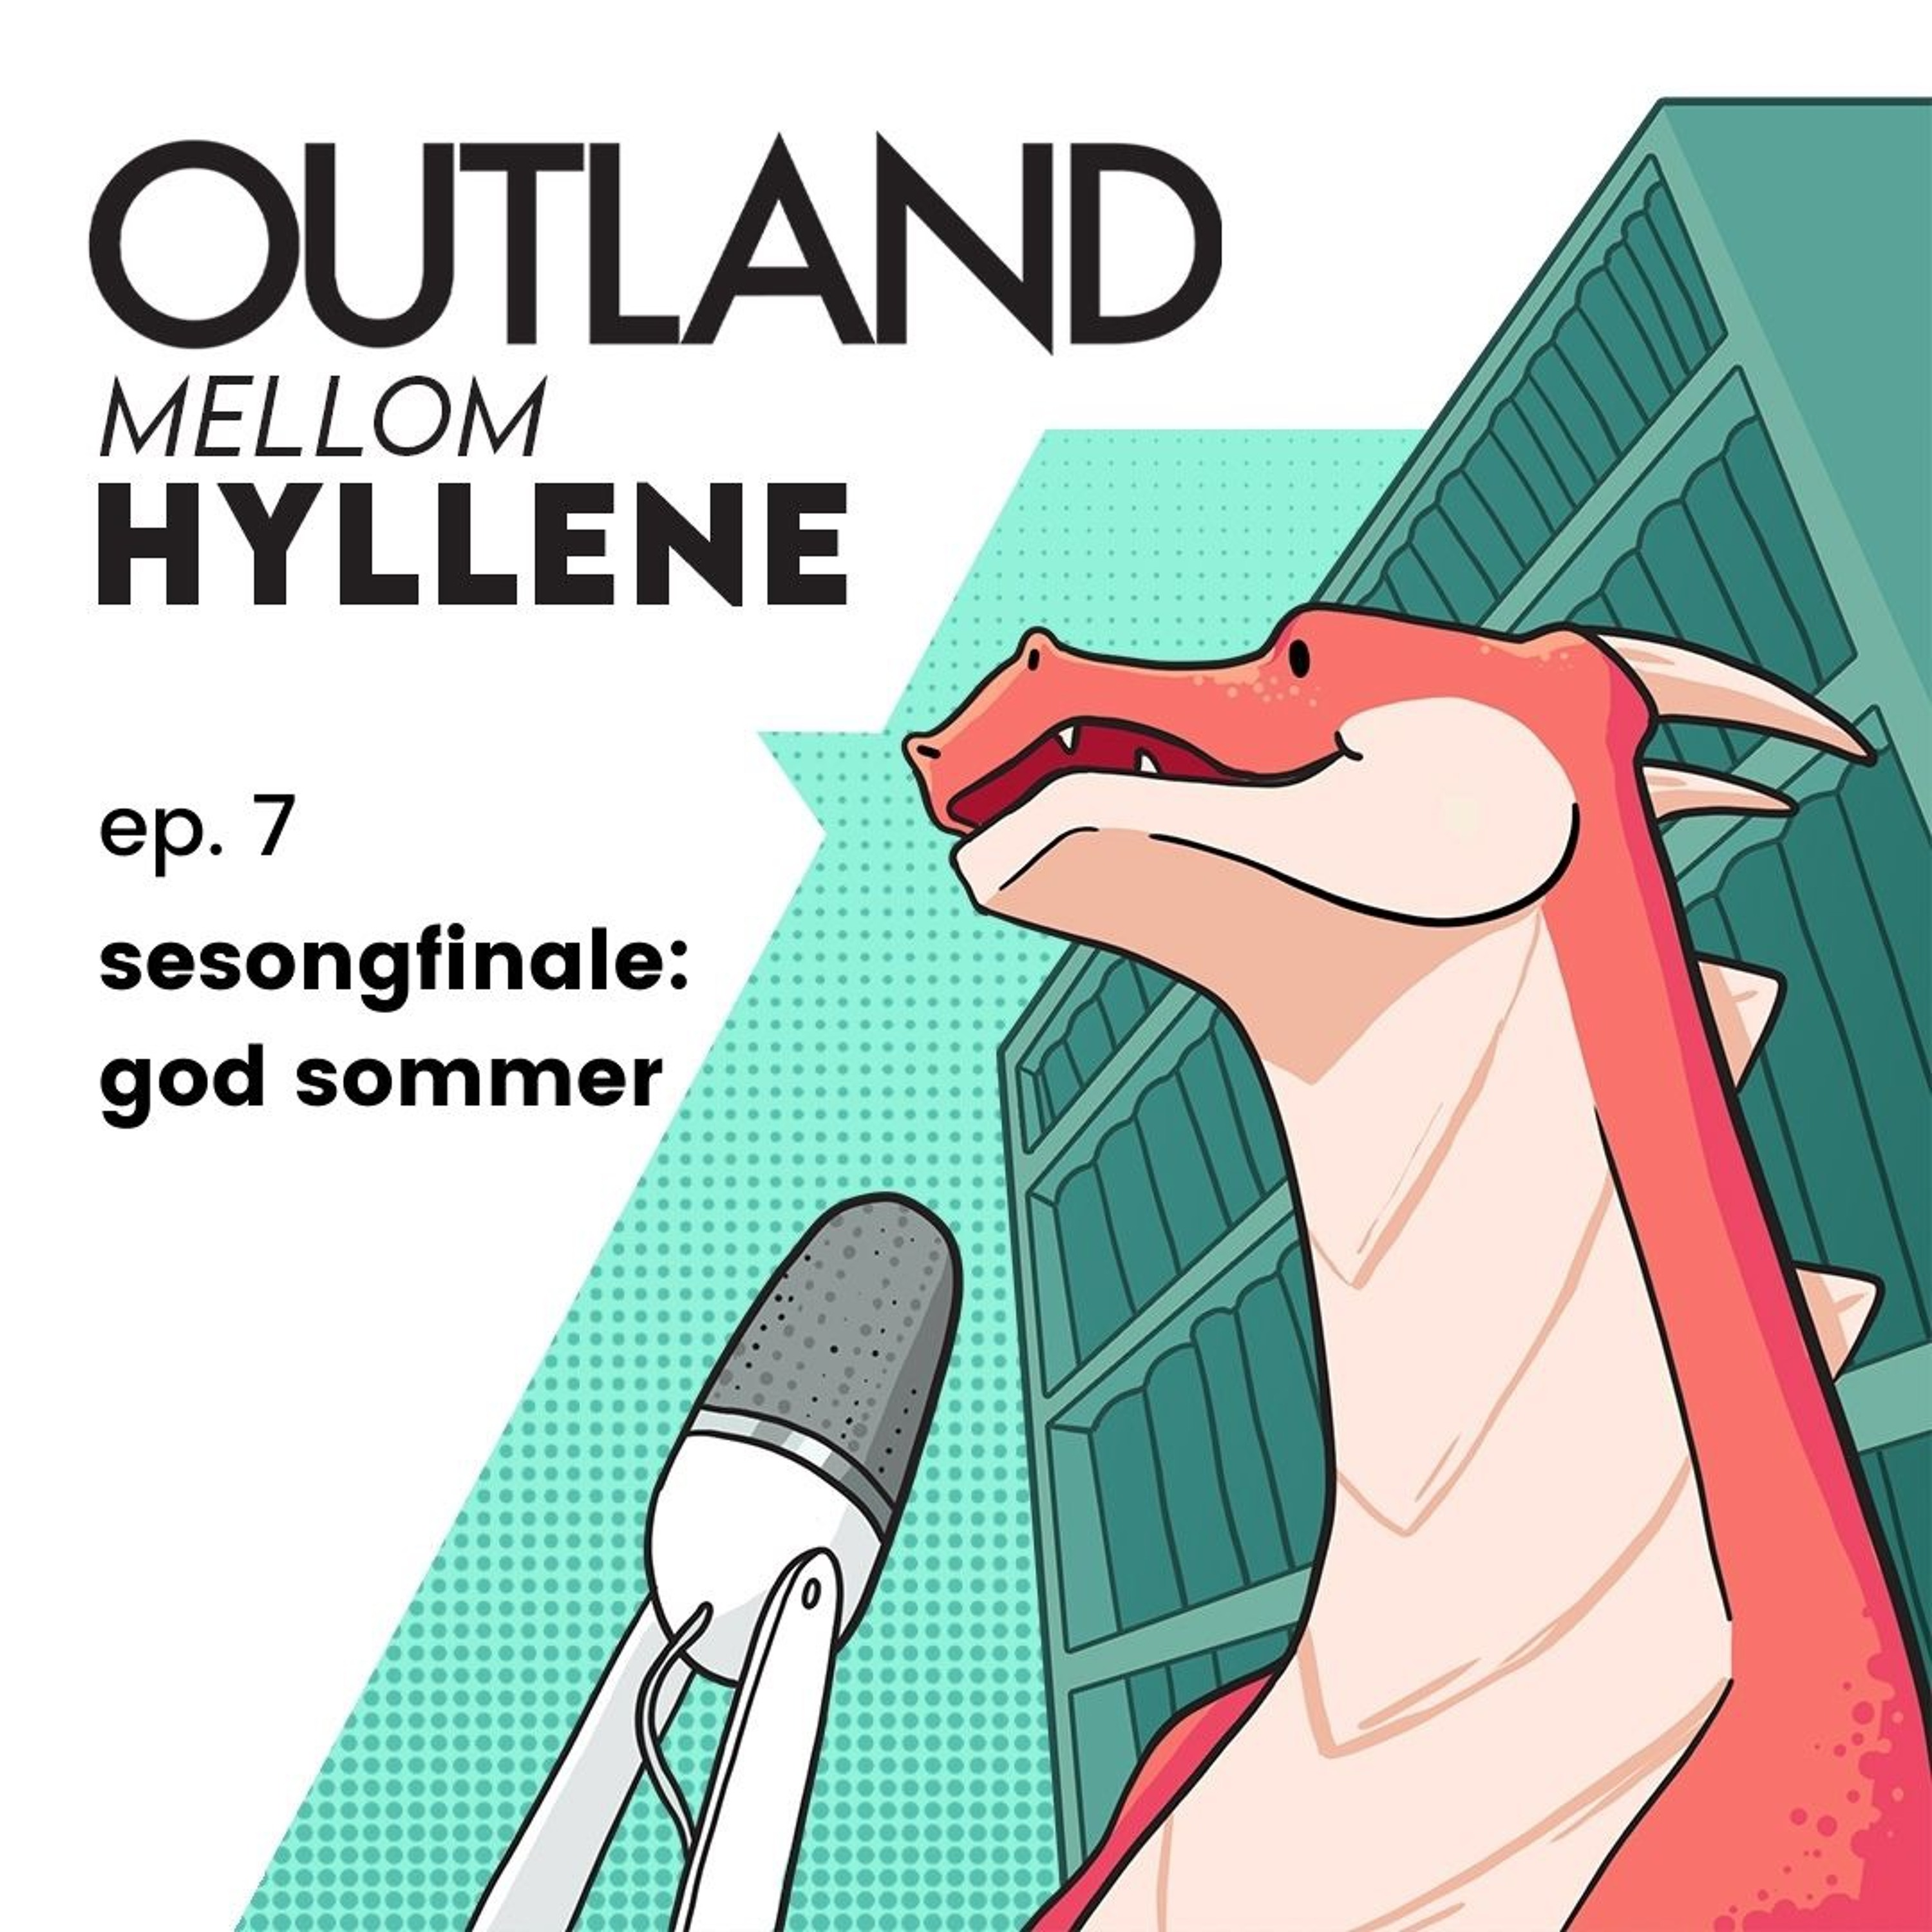 ep 7. sesongfinale: god sommer!